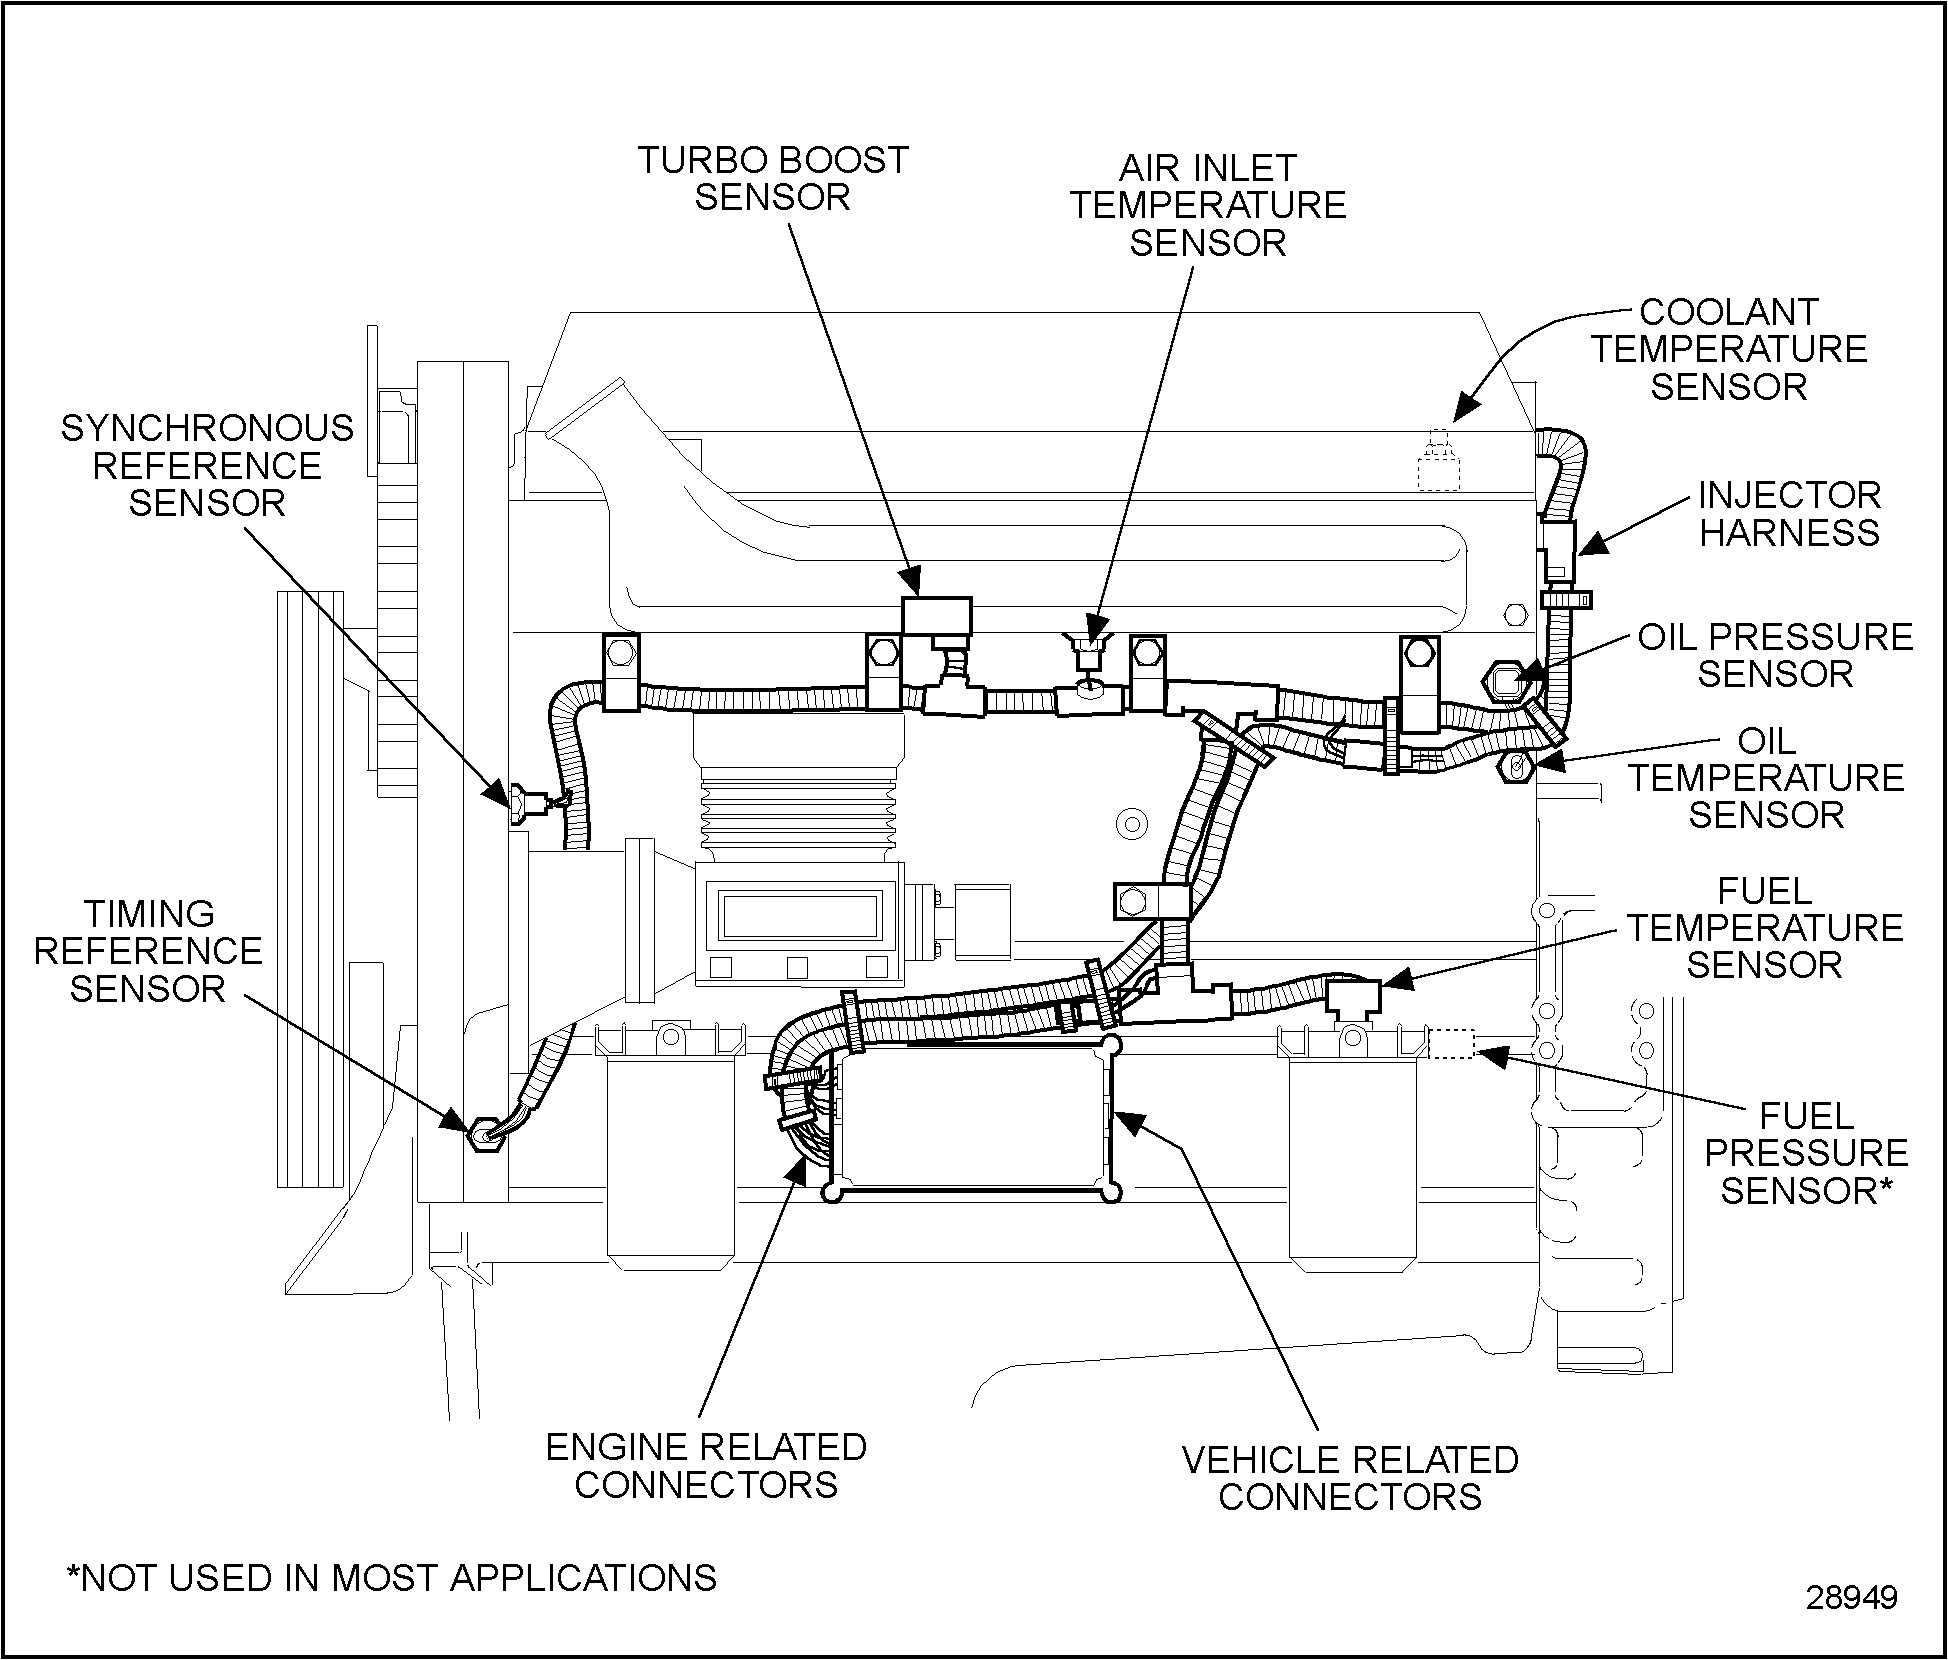 Air Line Diagram 2000 Freightliner Truck I Have 2000 Freightliner Fld120 with A Detroit 60 Engine with the Following Problems 1 Engine Of Air Line Diagram 2000 Freightliner Truck